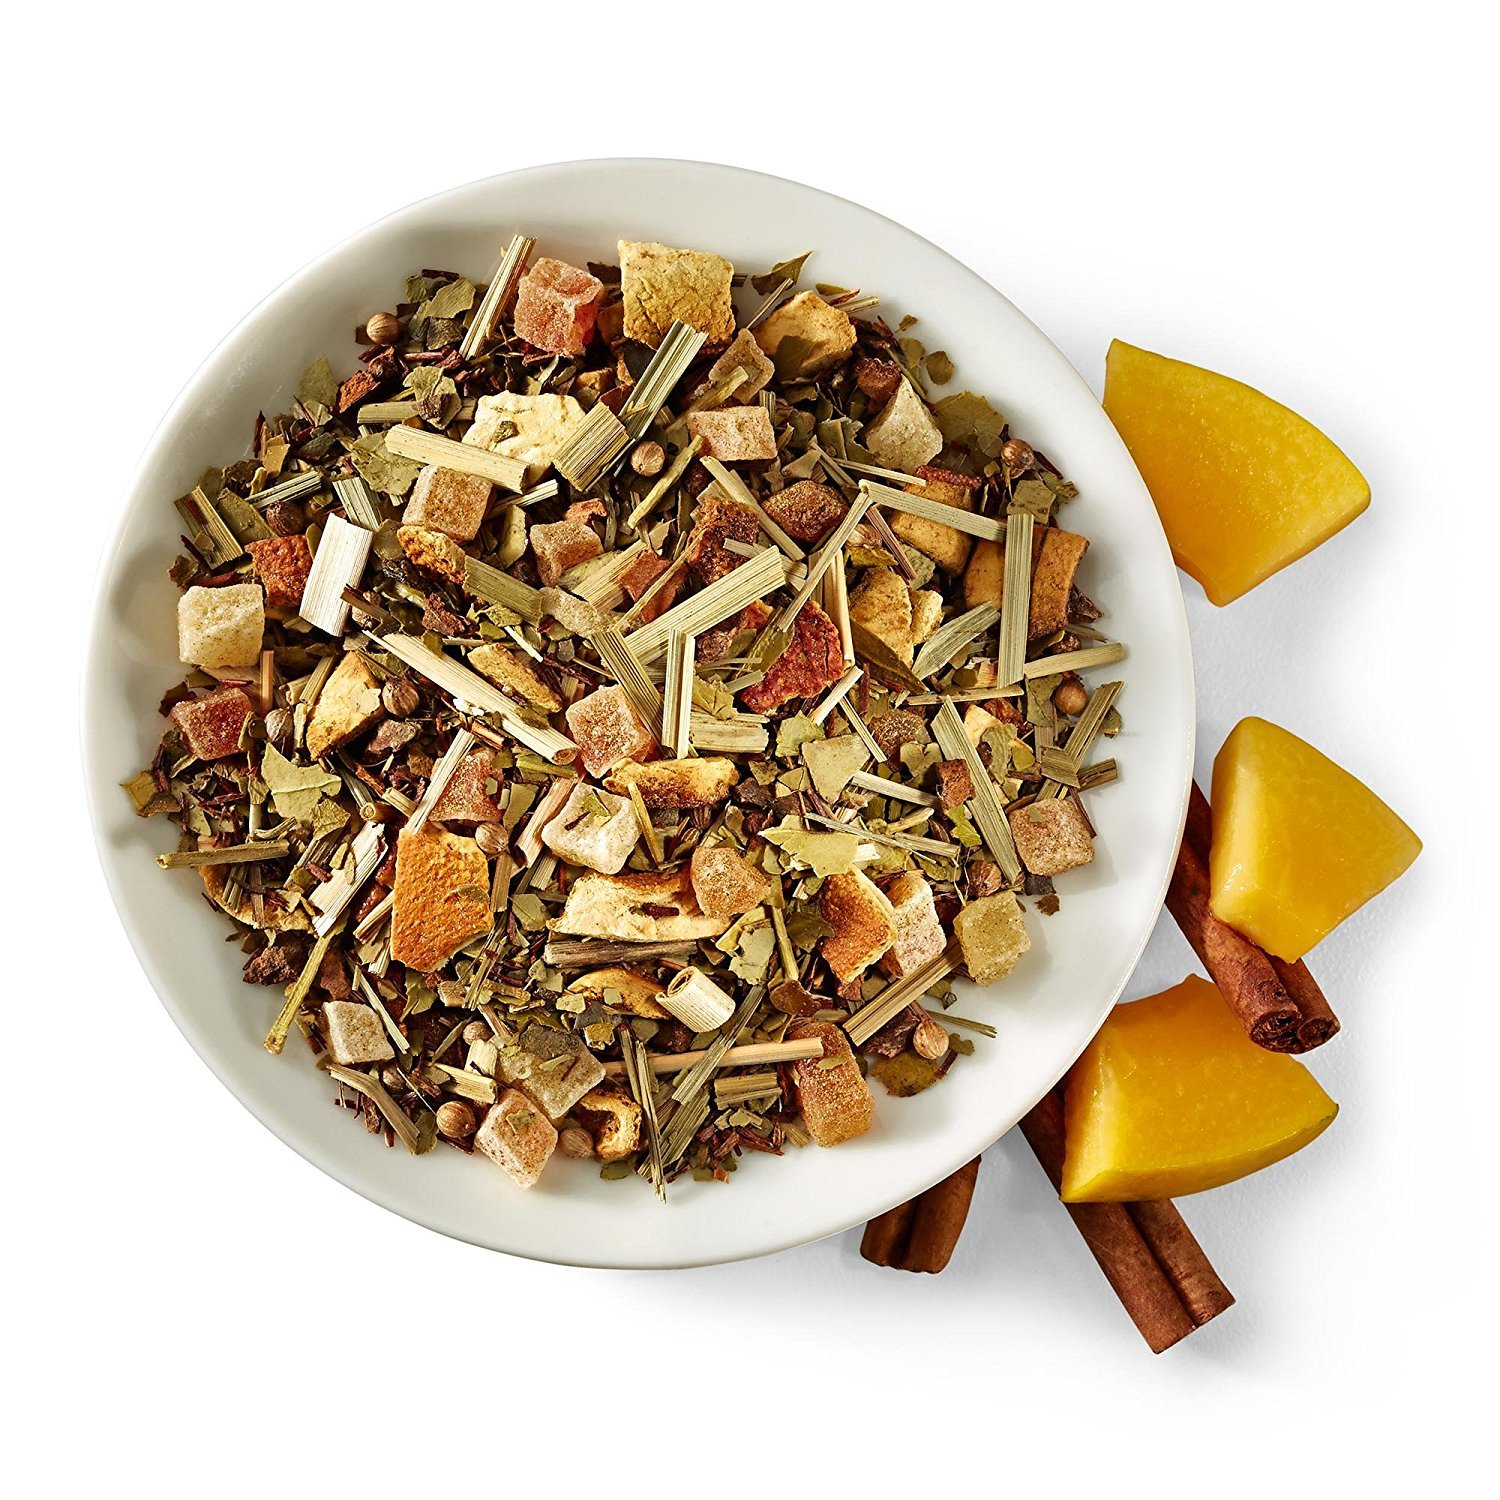 Samurai Chai Mate Tea by Teavana (8oz Bag) by Teavana (Image #1)